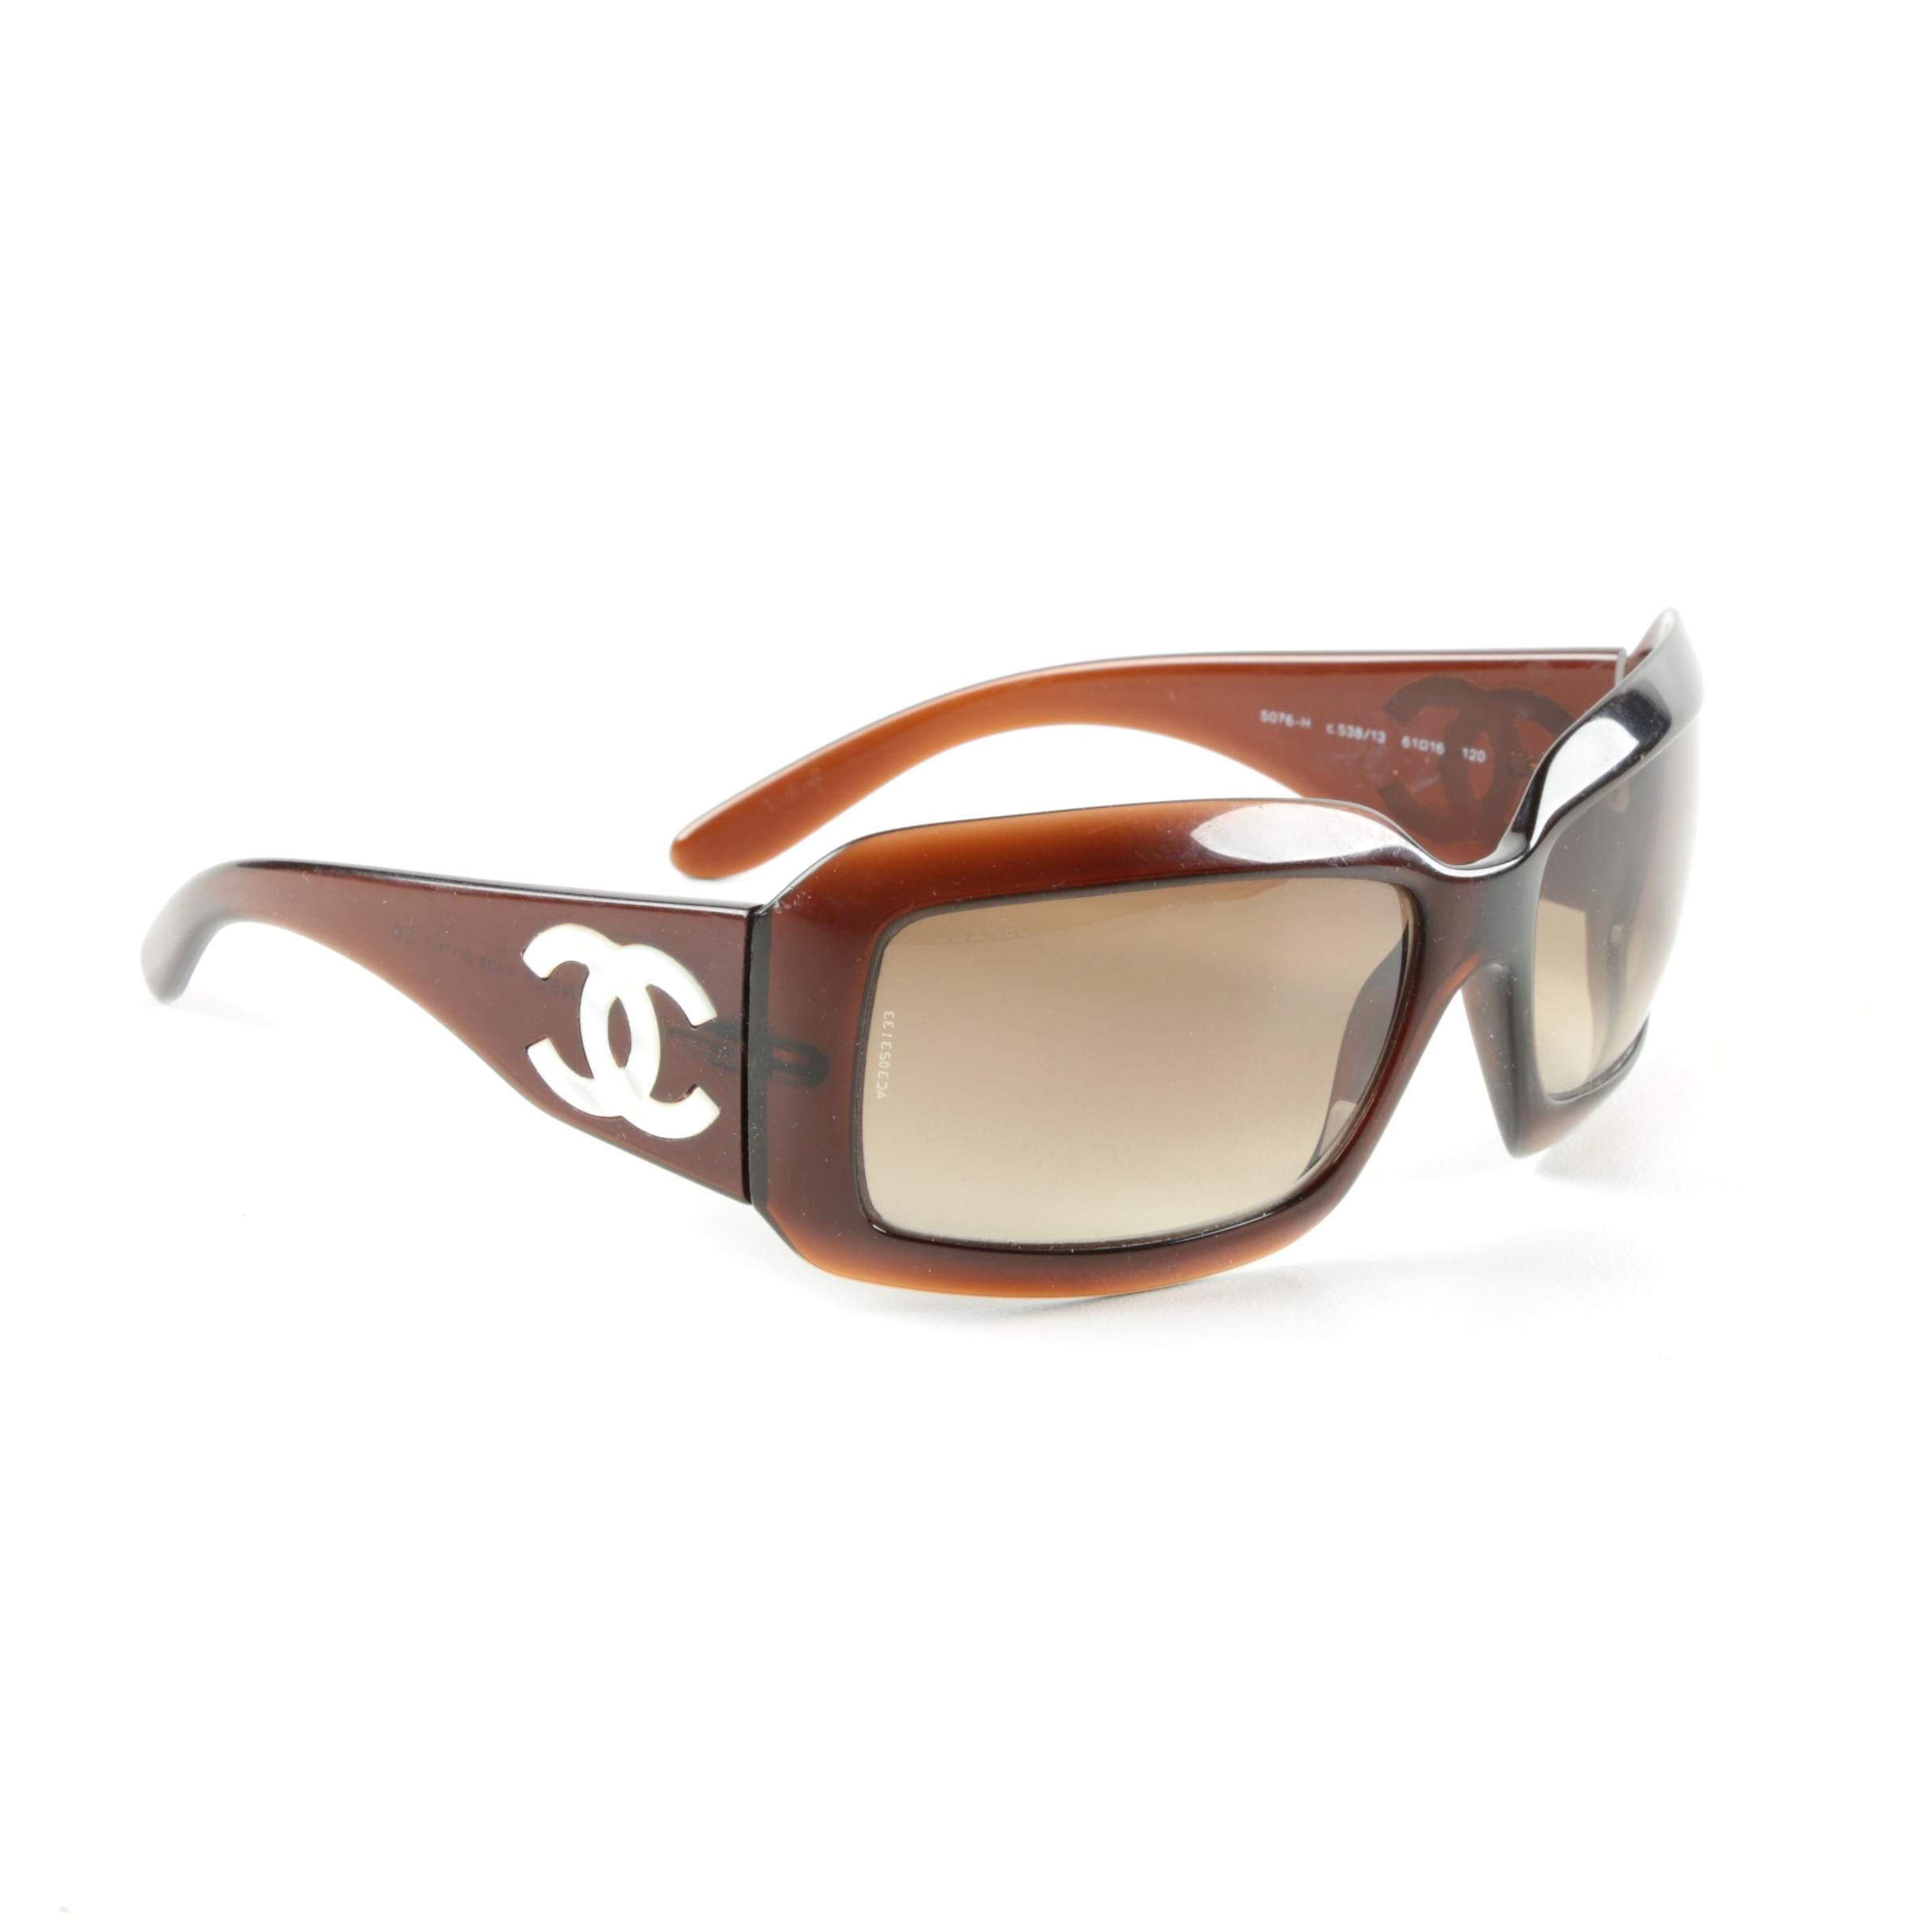 Chanel Sunglasses with Mother of Pearl Logo